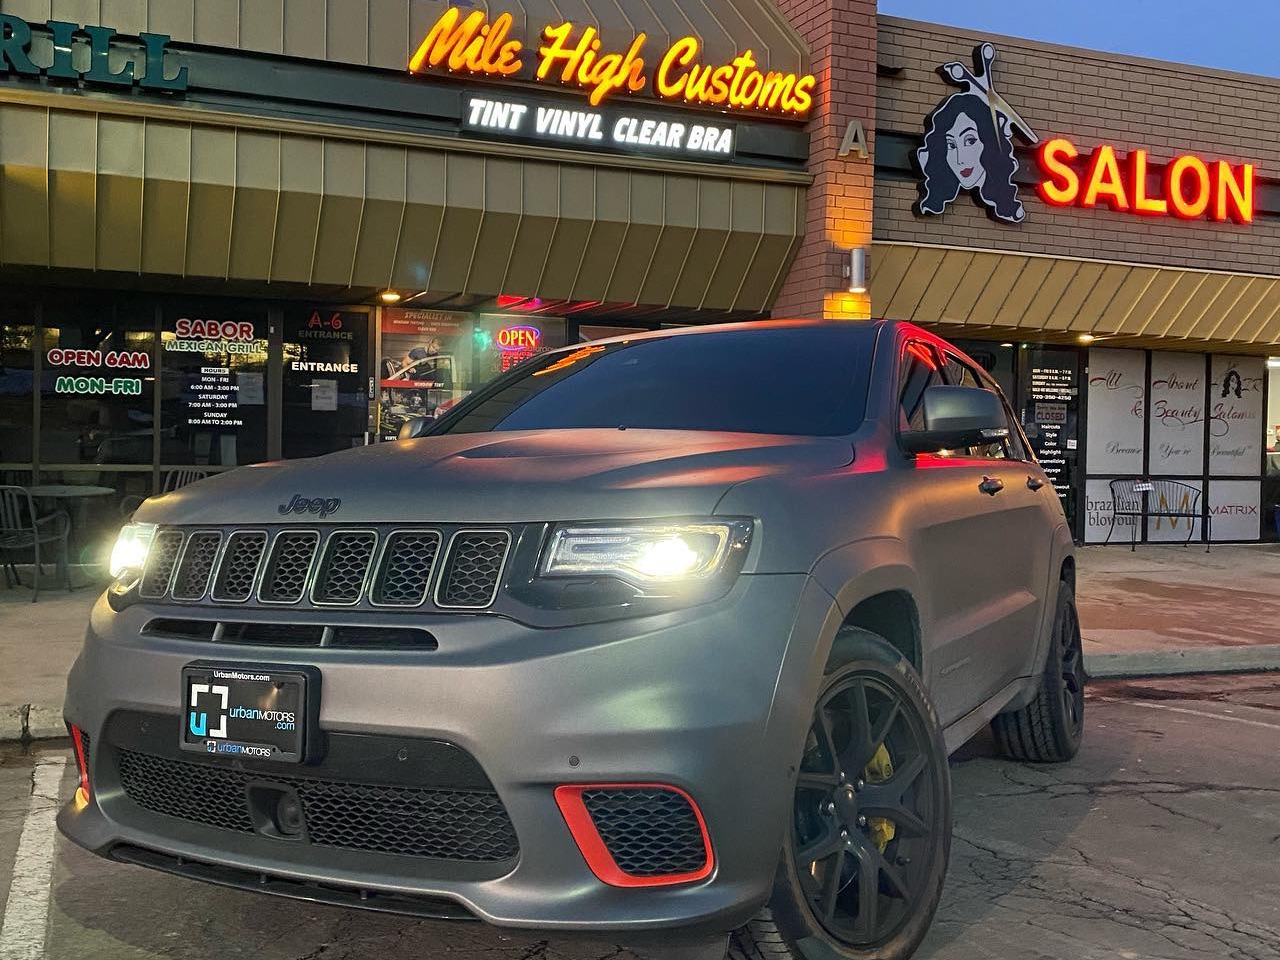 Jeep Trackhawk outside Mile High Customs after window tinting job